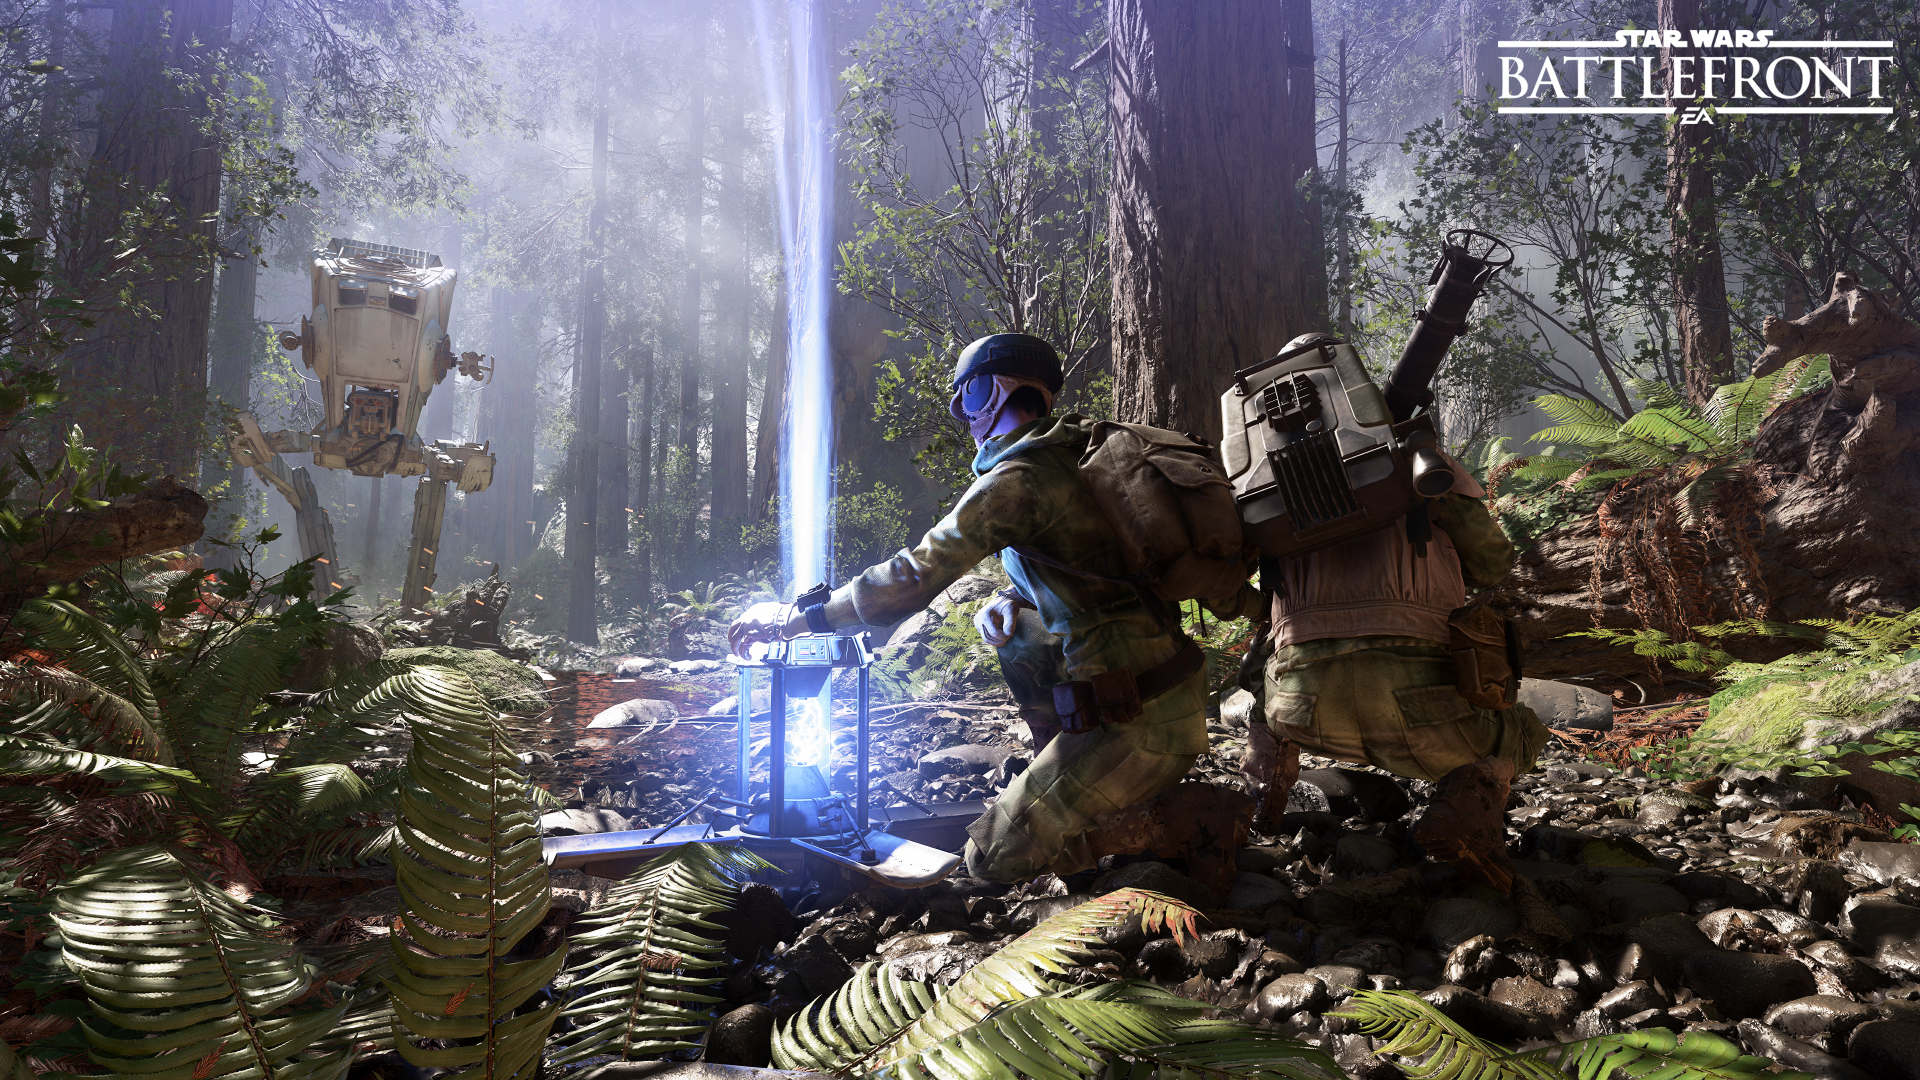 Star Wars Battlefront _4-17_Shield